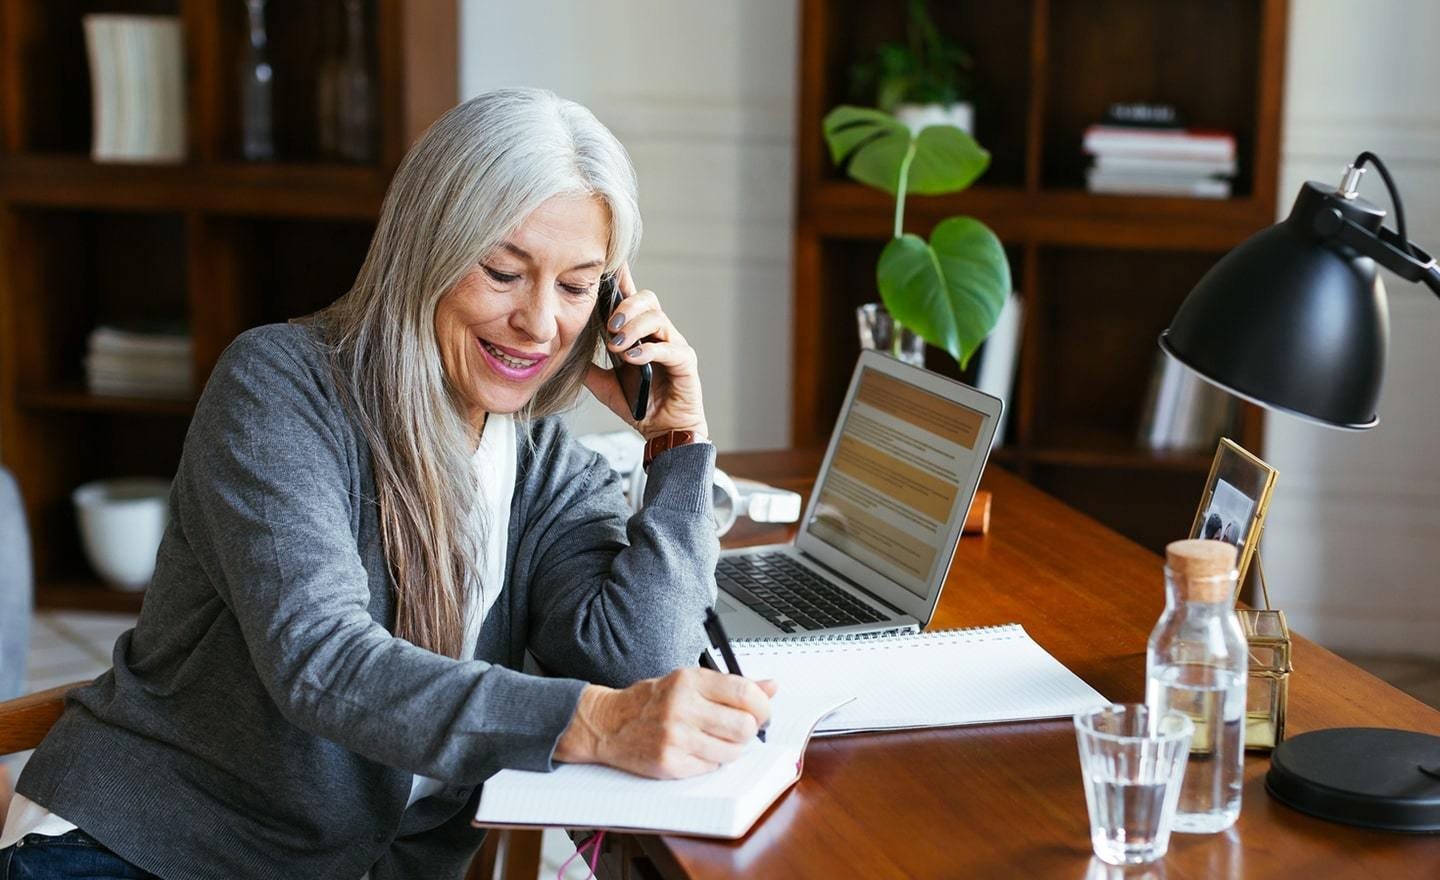 Older professional woman working from home